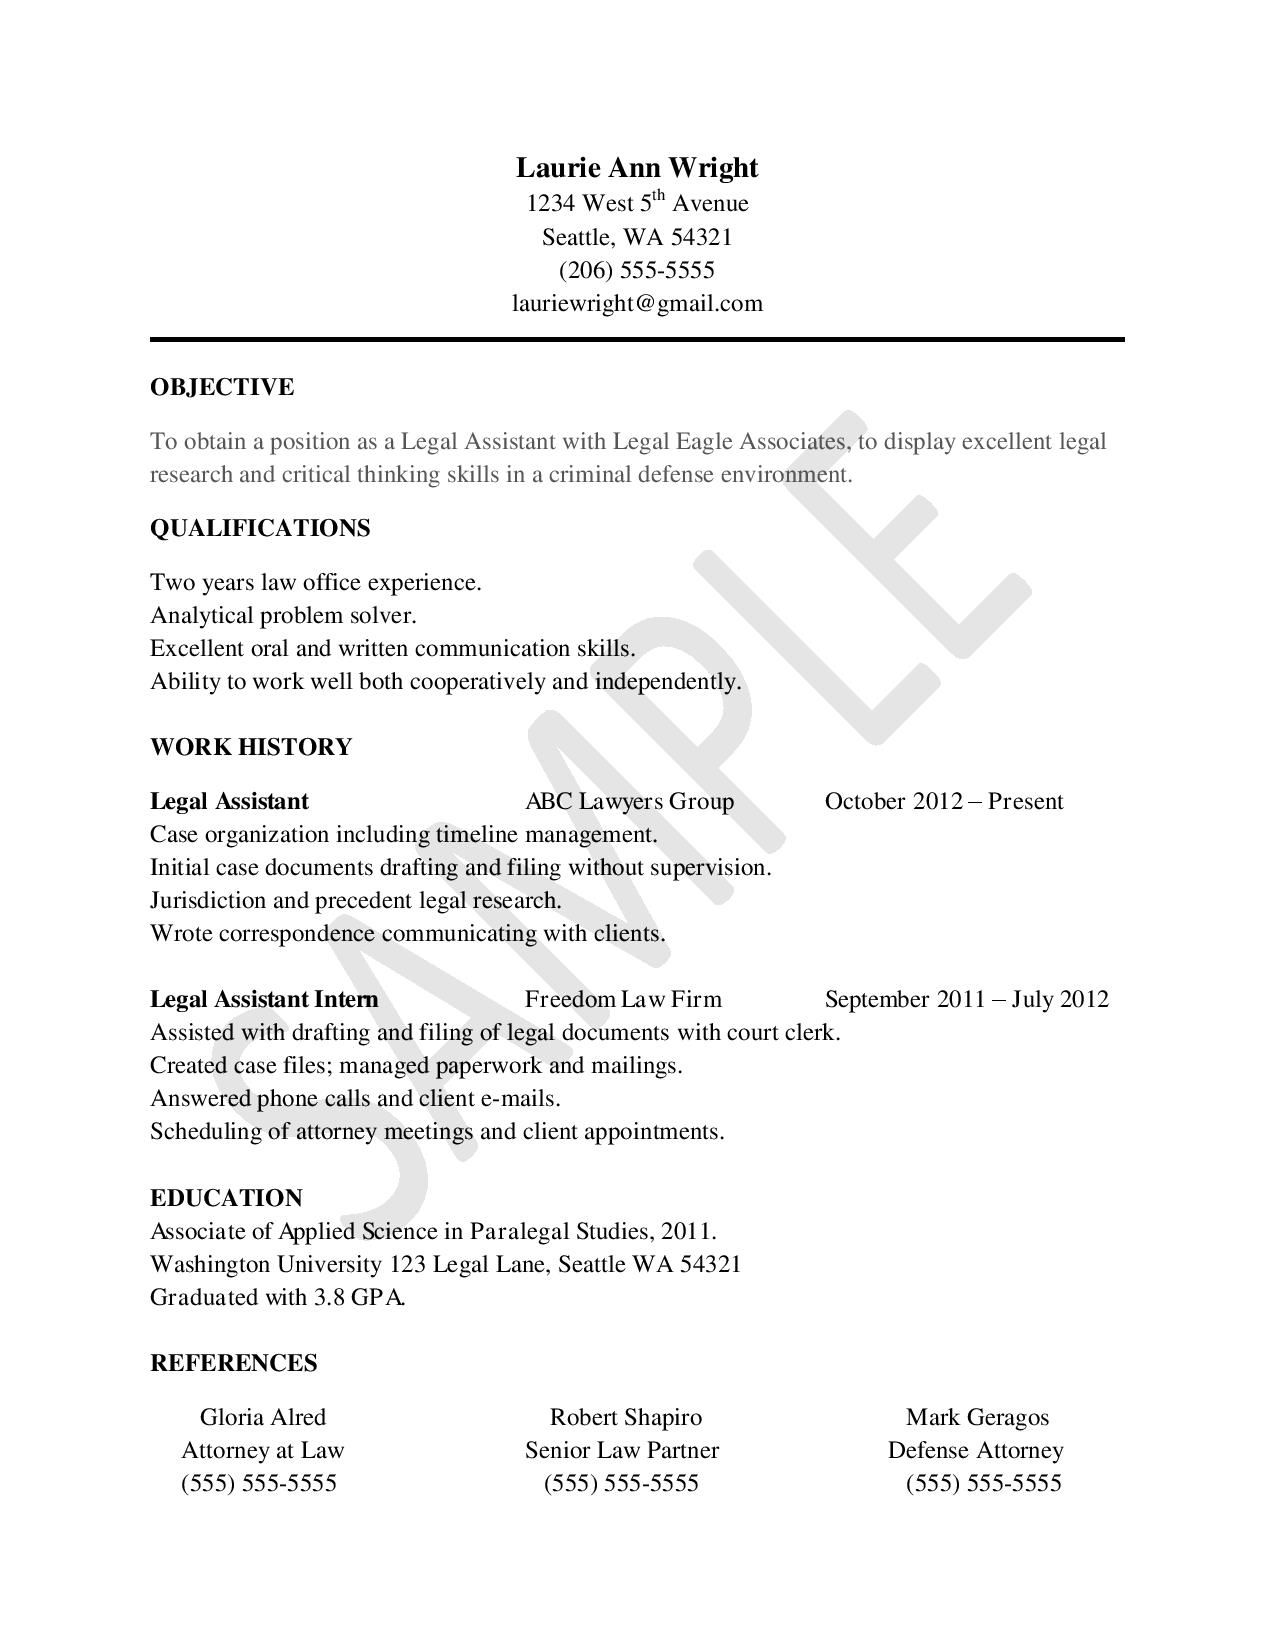 Sample Resume For Legal Assistants  LegalAssistantInfo